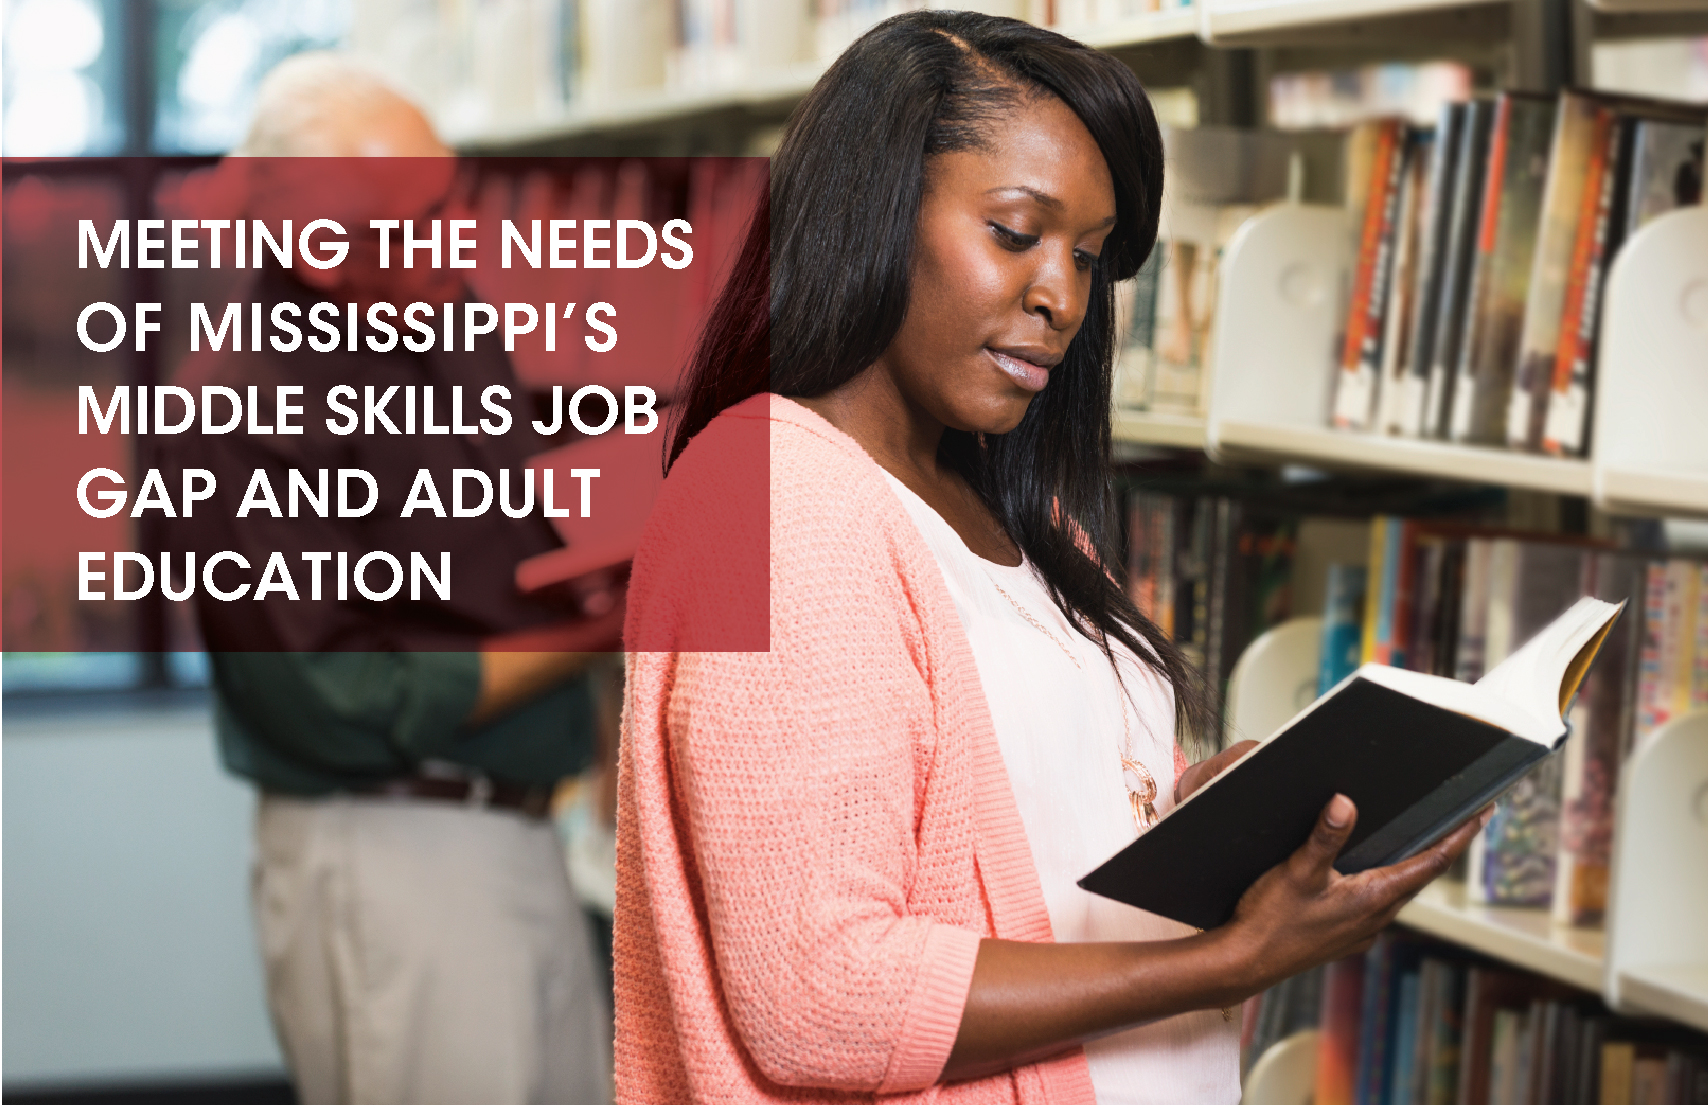 410x266_Meeting the needs of Mississippi¹s Middle Skills Job Gap and Adult Education